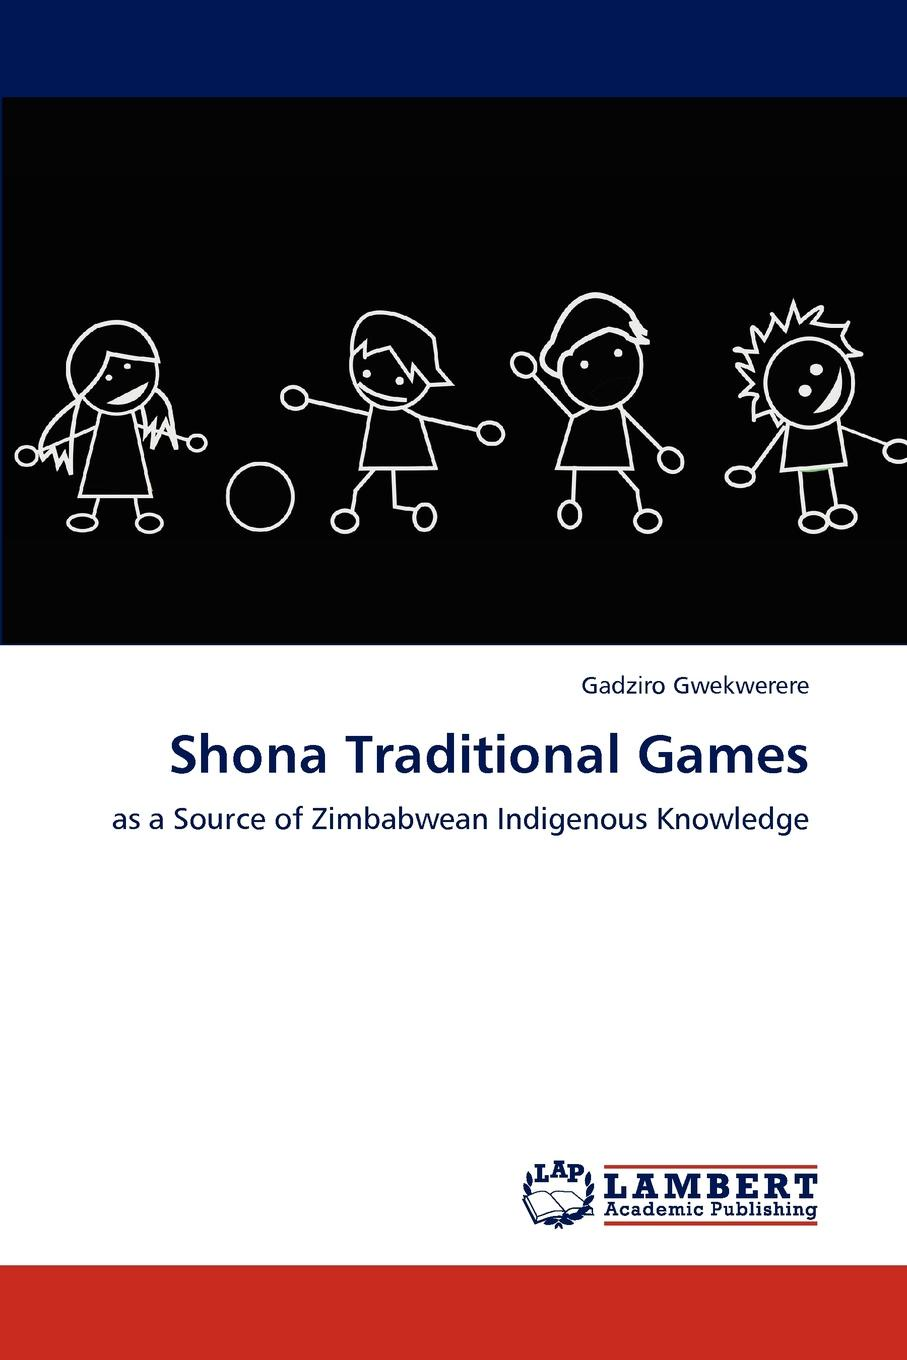 Gadziro Gwekwerere Shona Traditional Games indigenous voices